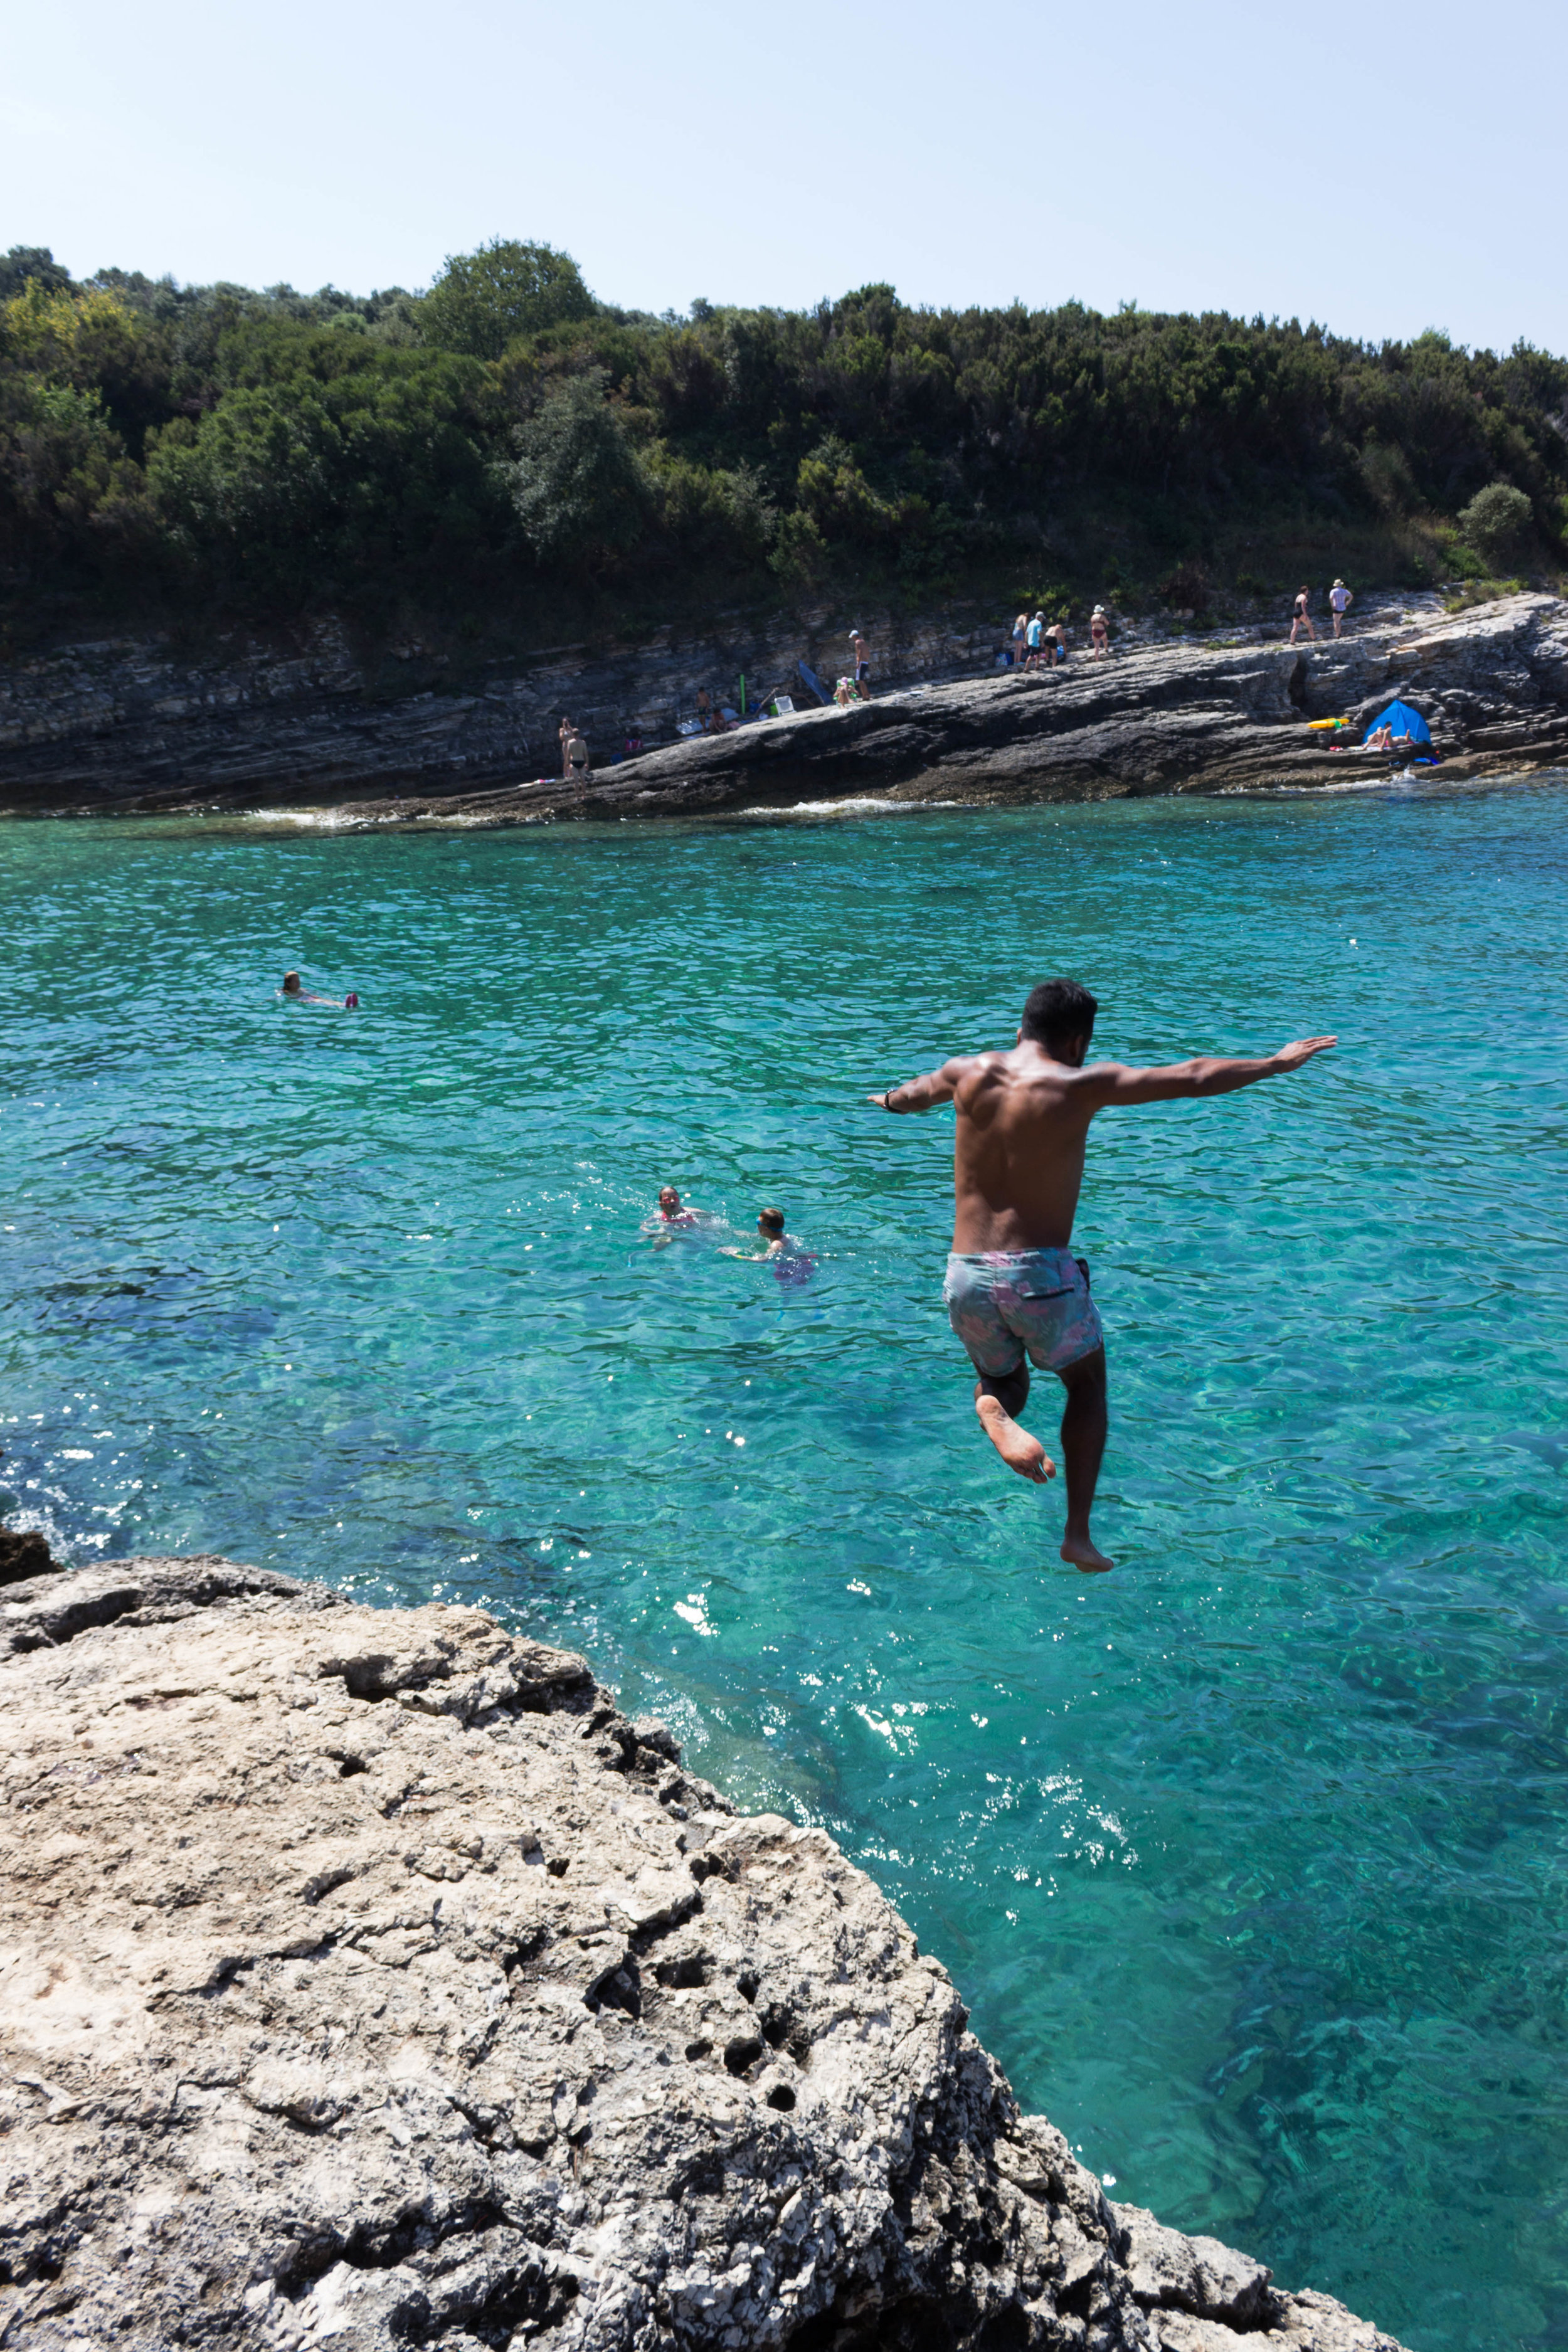 Luis cliff jumping in Pula